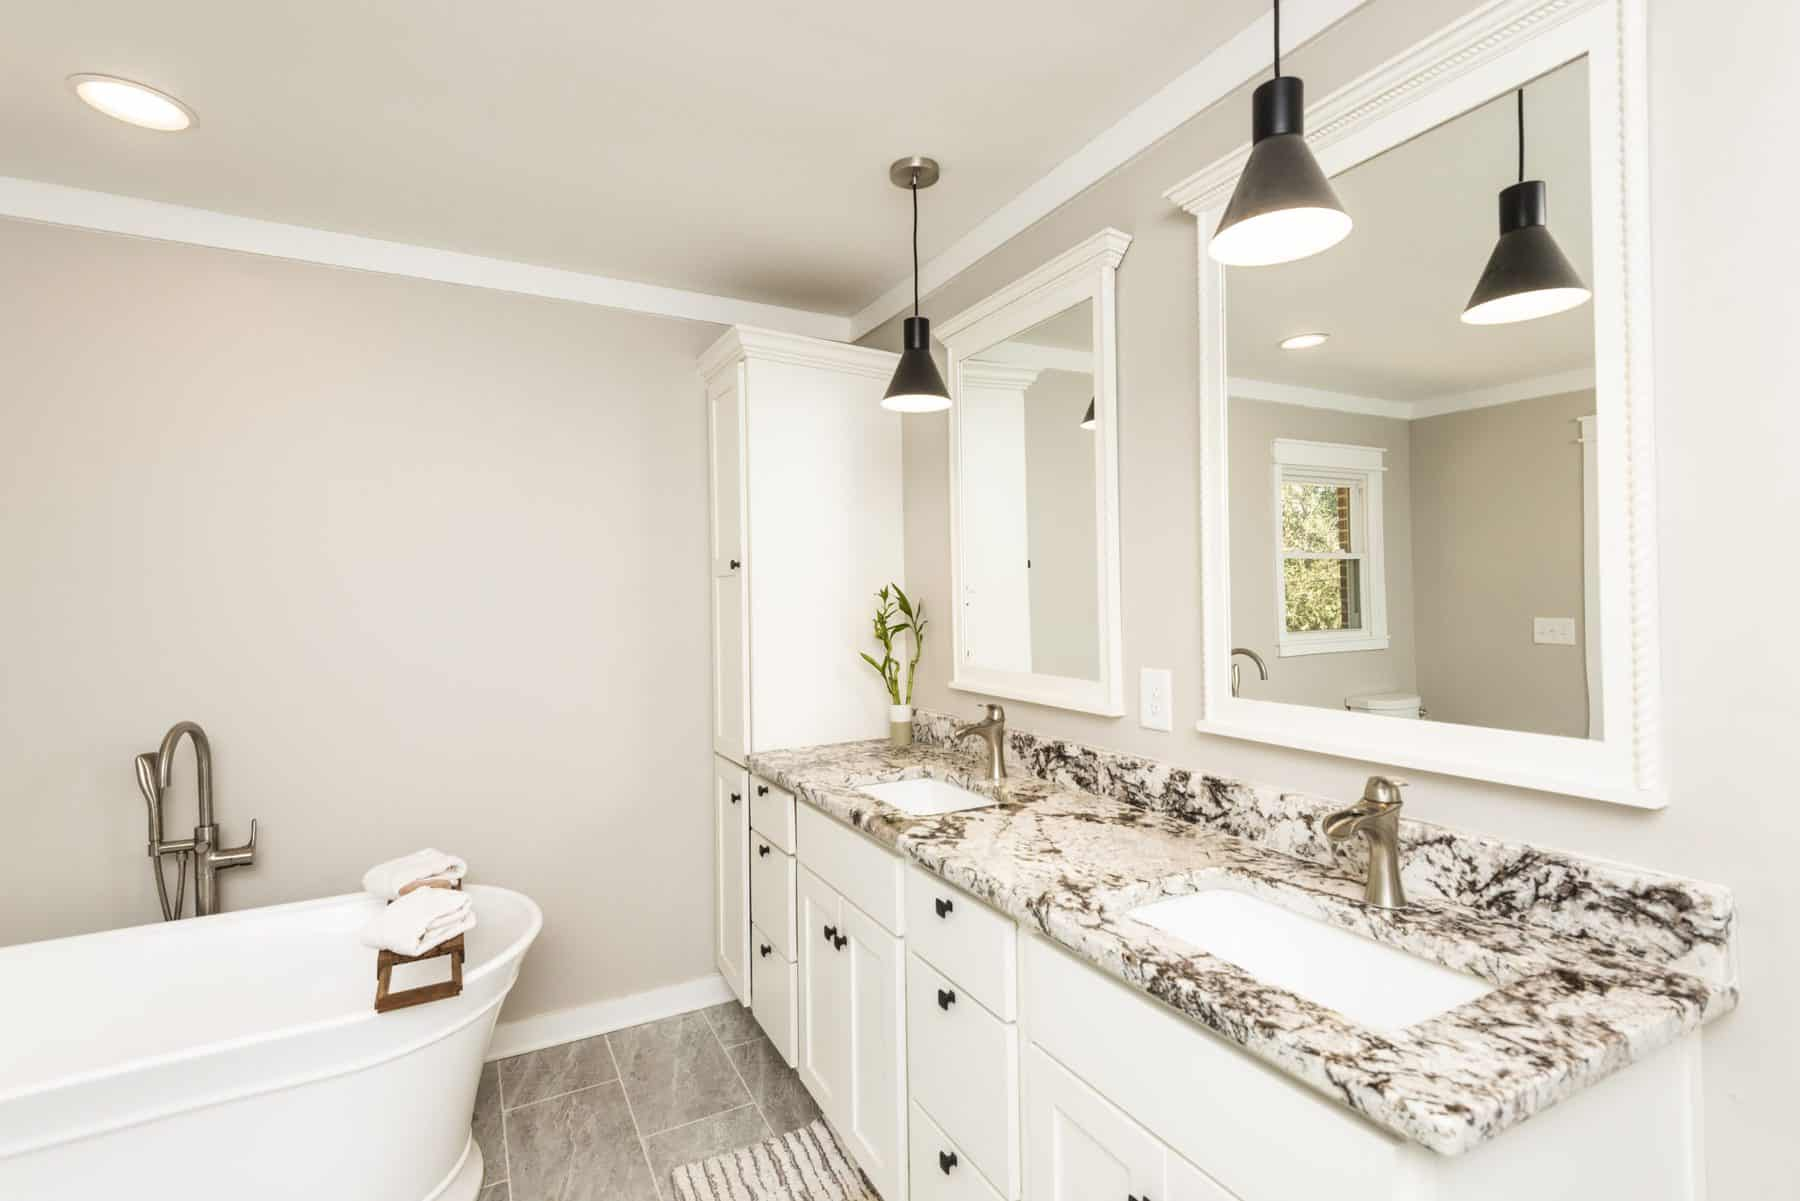 new dual vanity in owner's bath at home addition at home in Cartersville